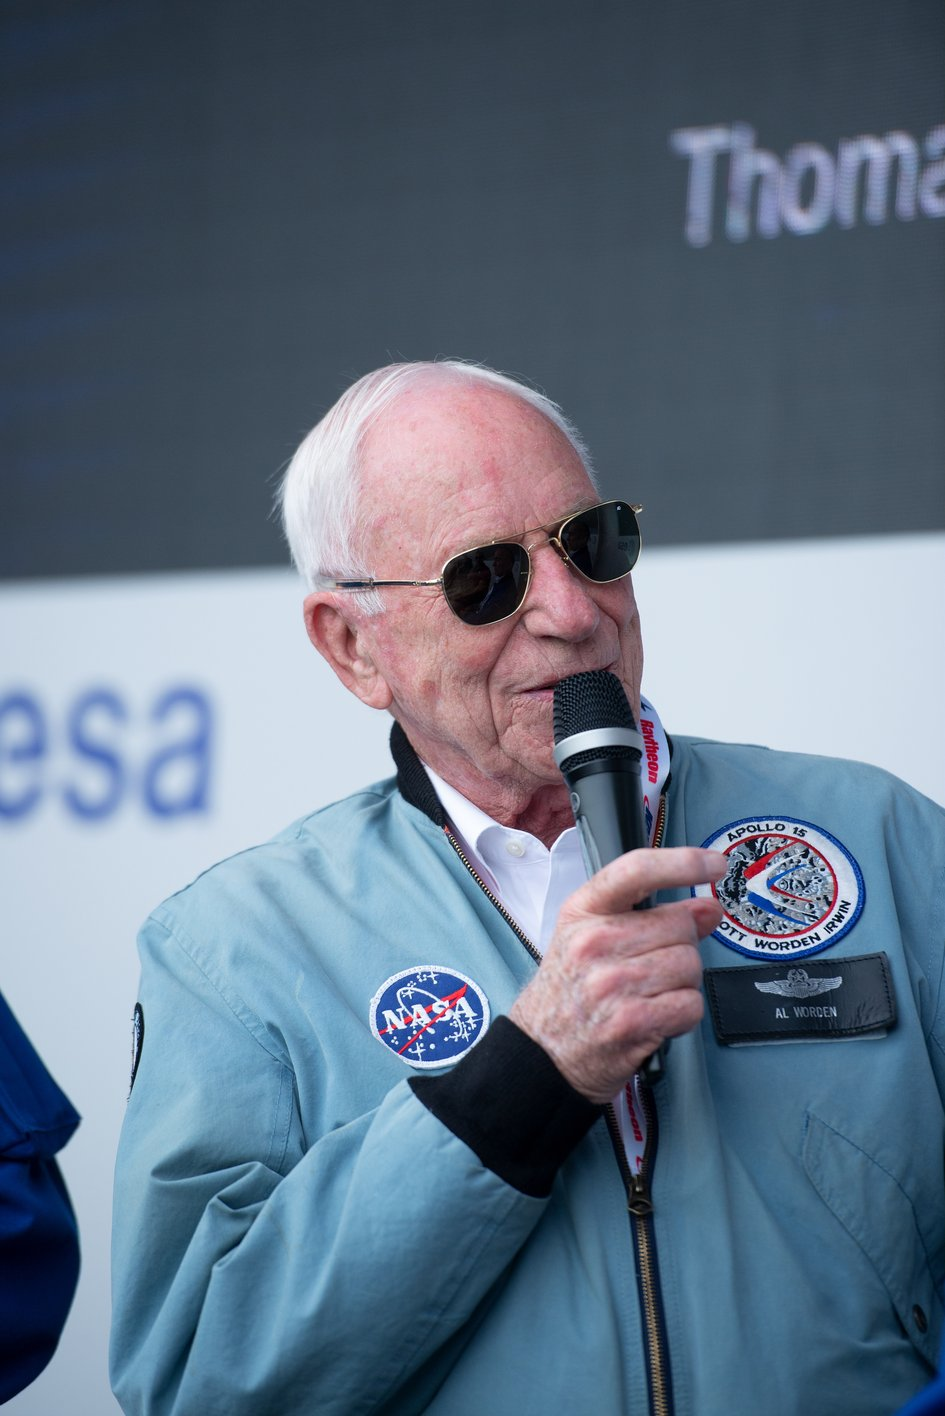 NASA Apollo astronaut Al Worden at Le Bourget